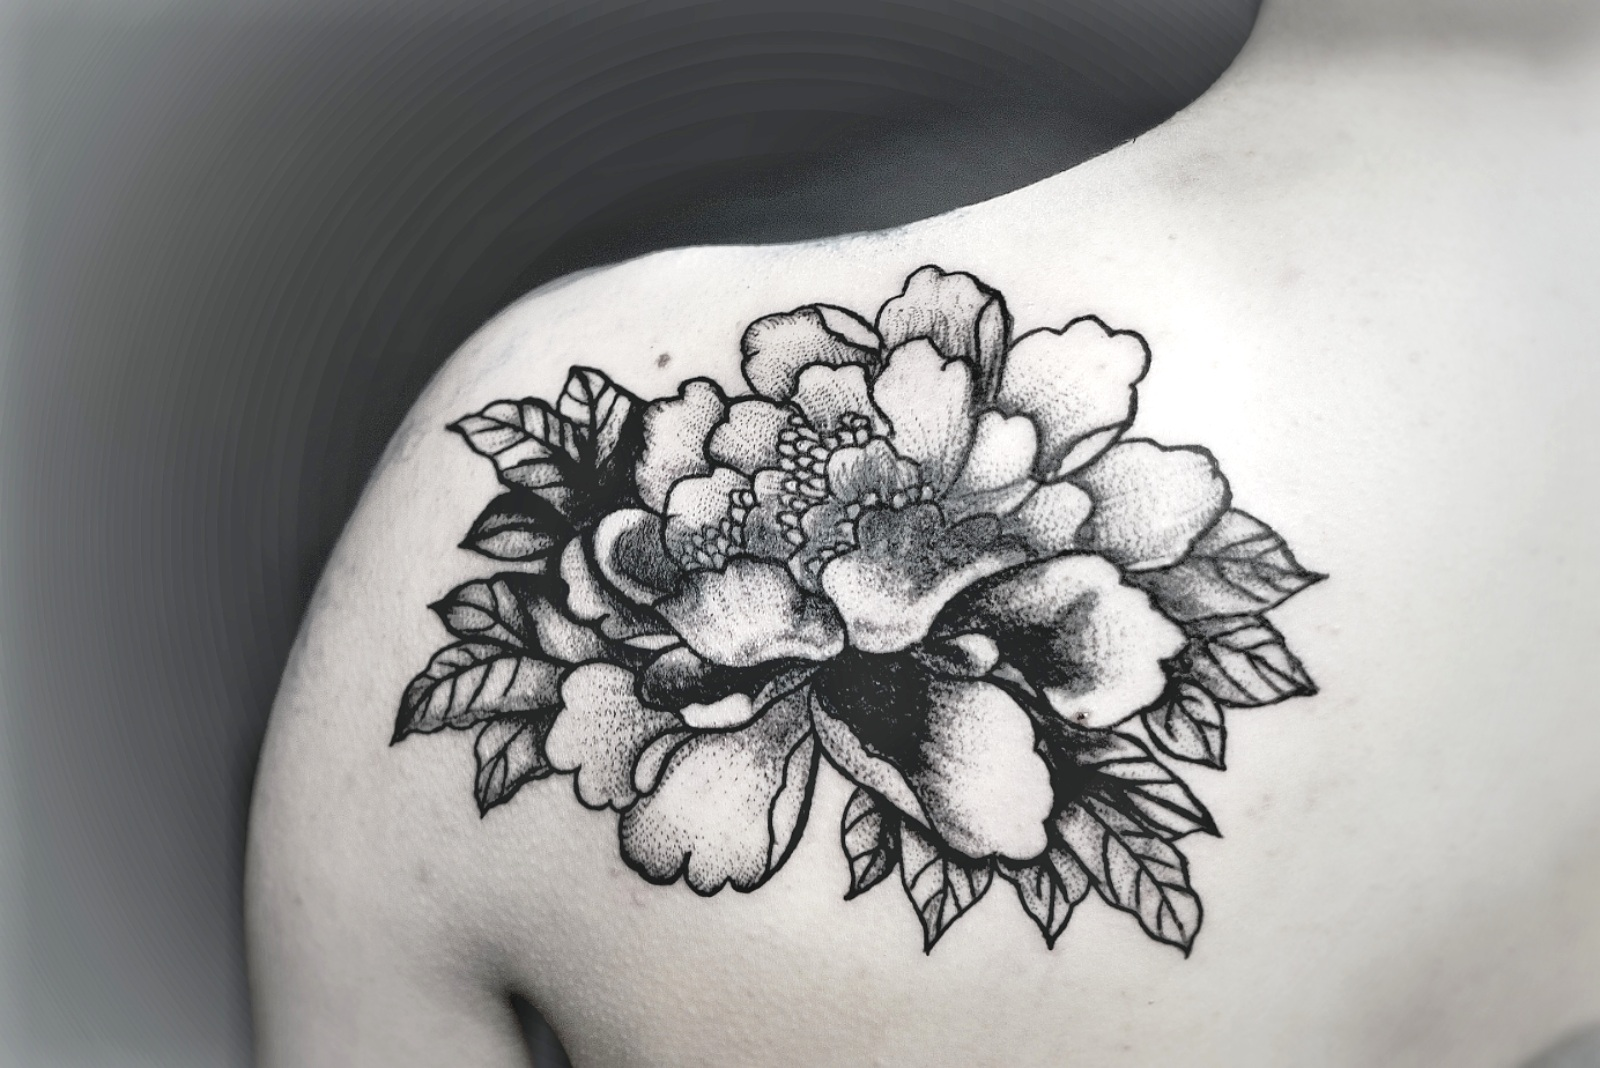 Custom Black and Grey Peony Flower Tattoo by Dani at Certified Tattoo Studio Denver Co.jpg